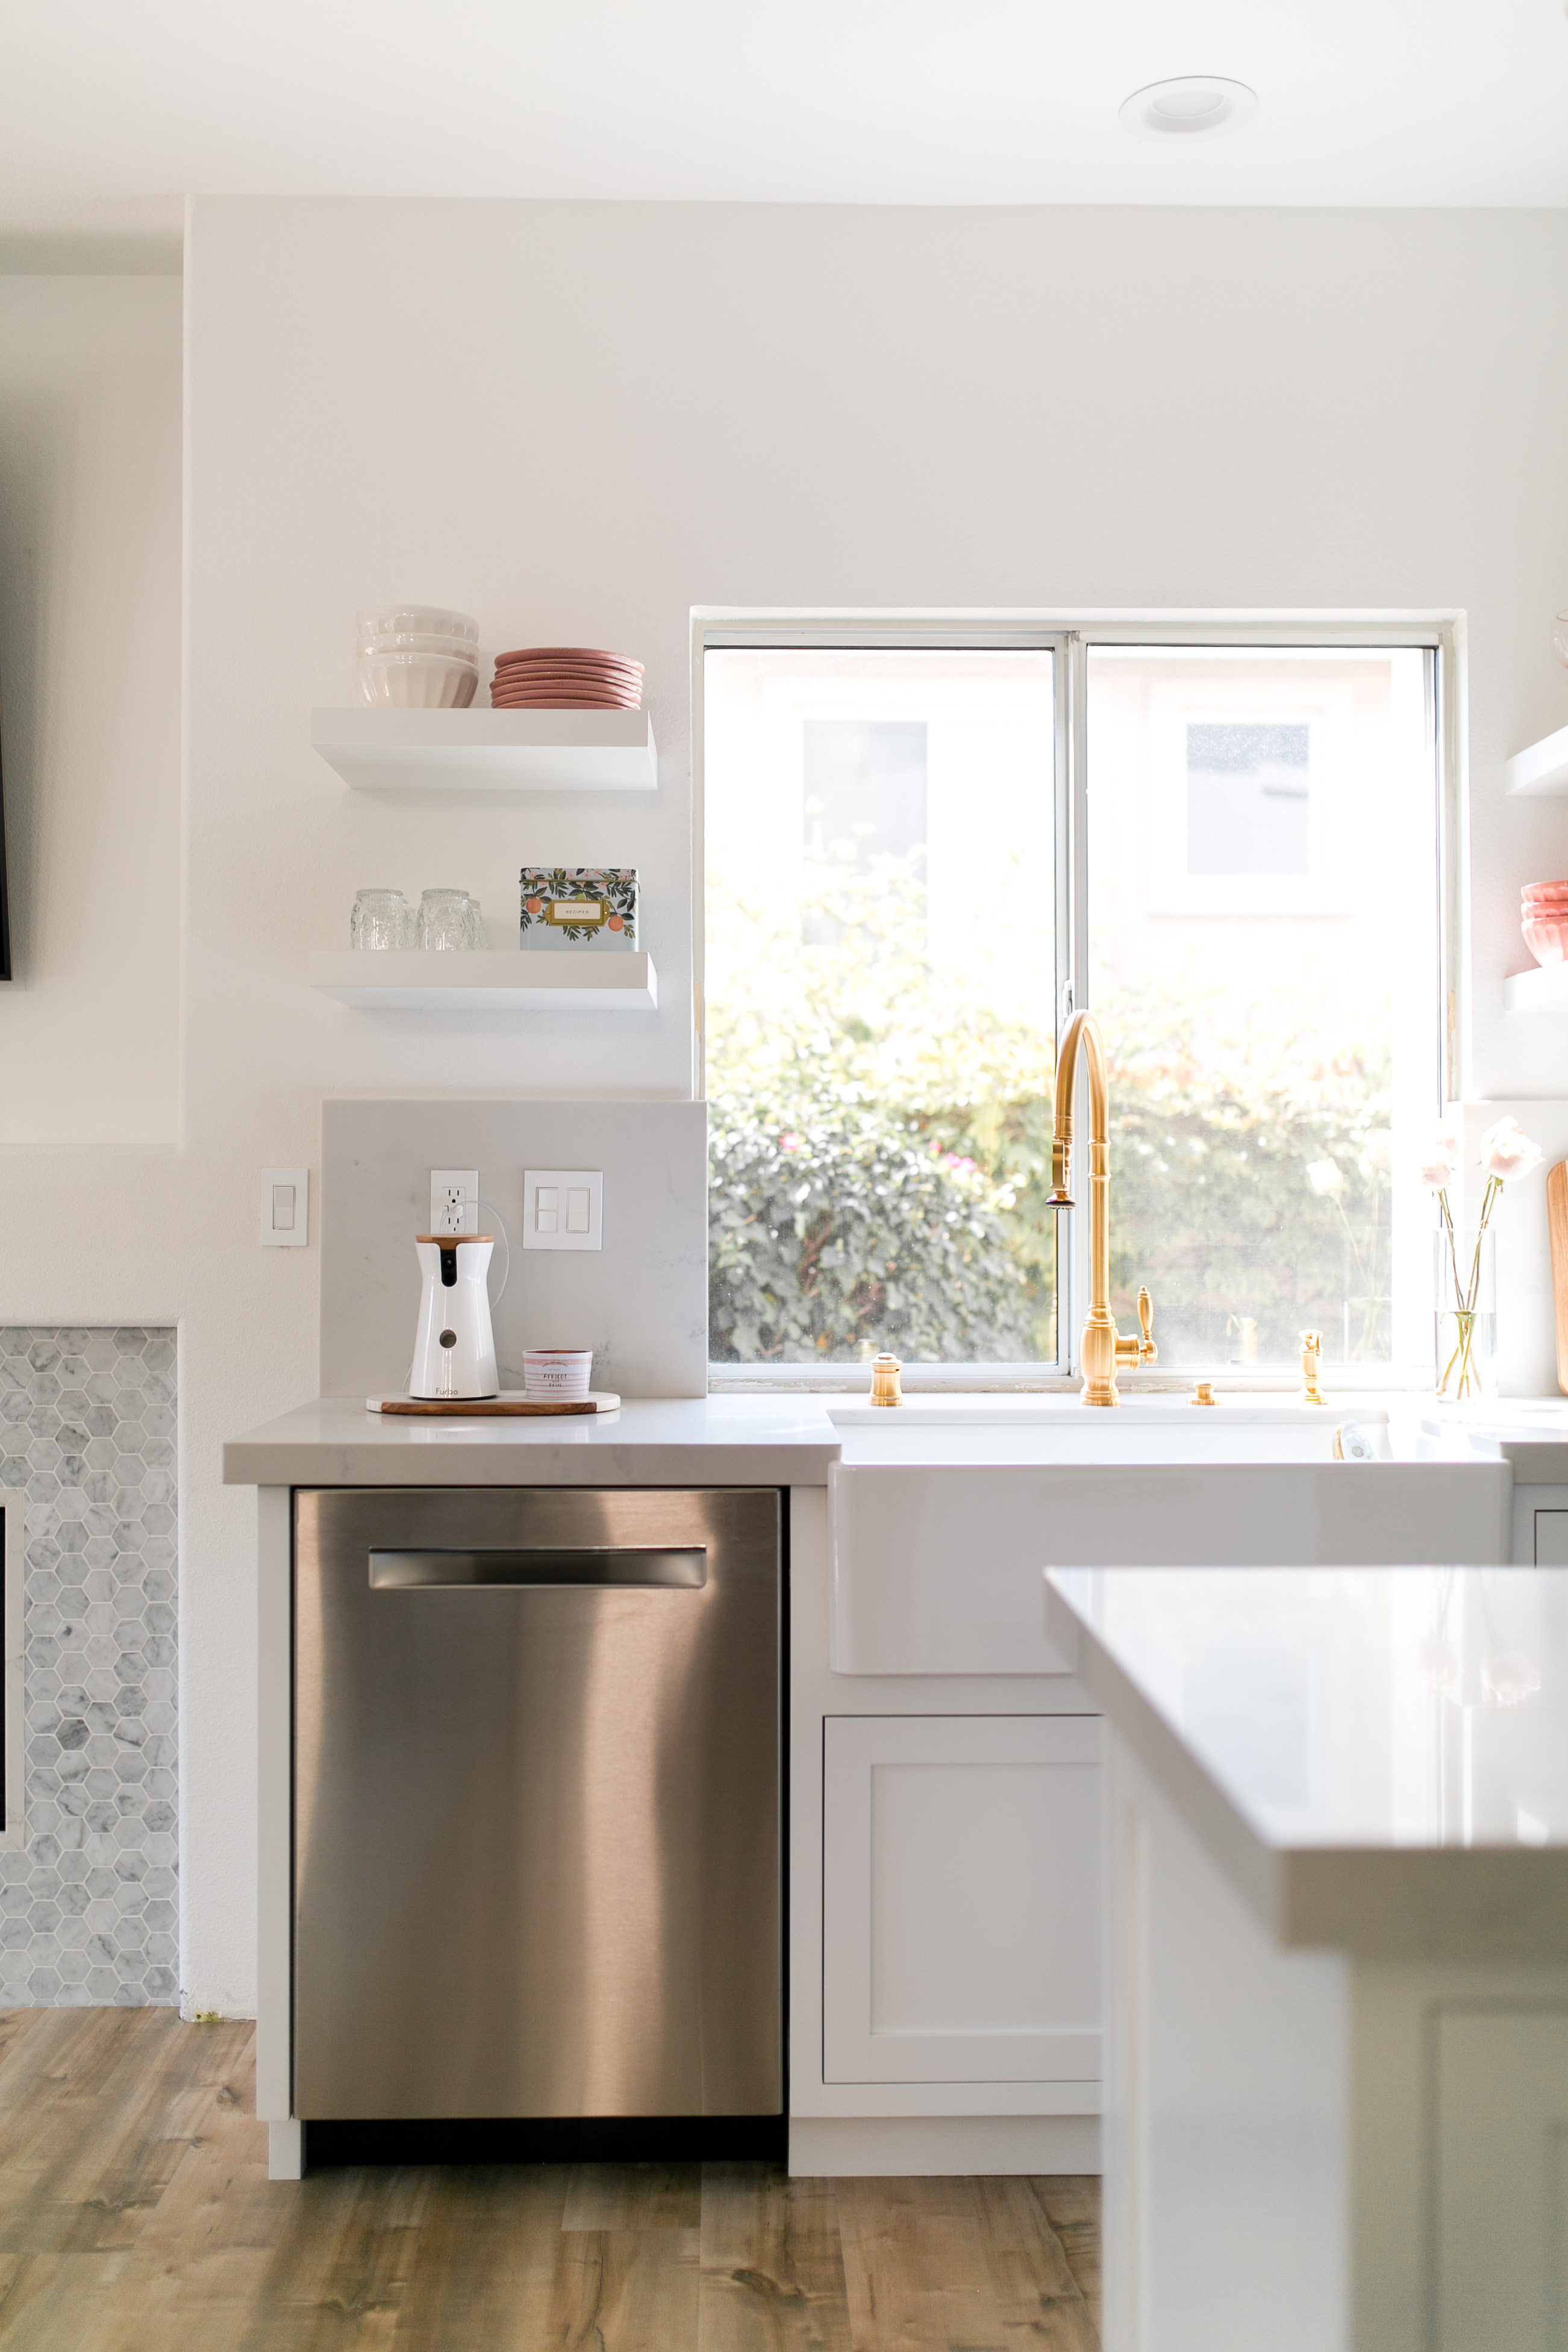 daryl-ann denner reveals her white marble kitchen with open shelving and gold faucet